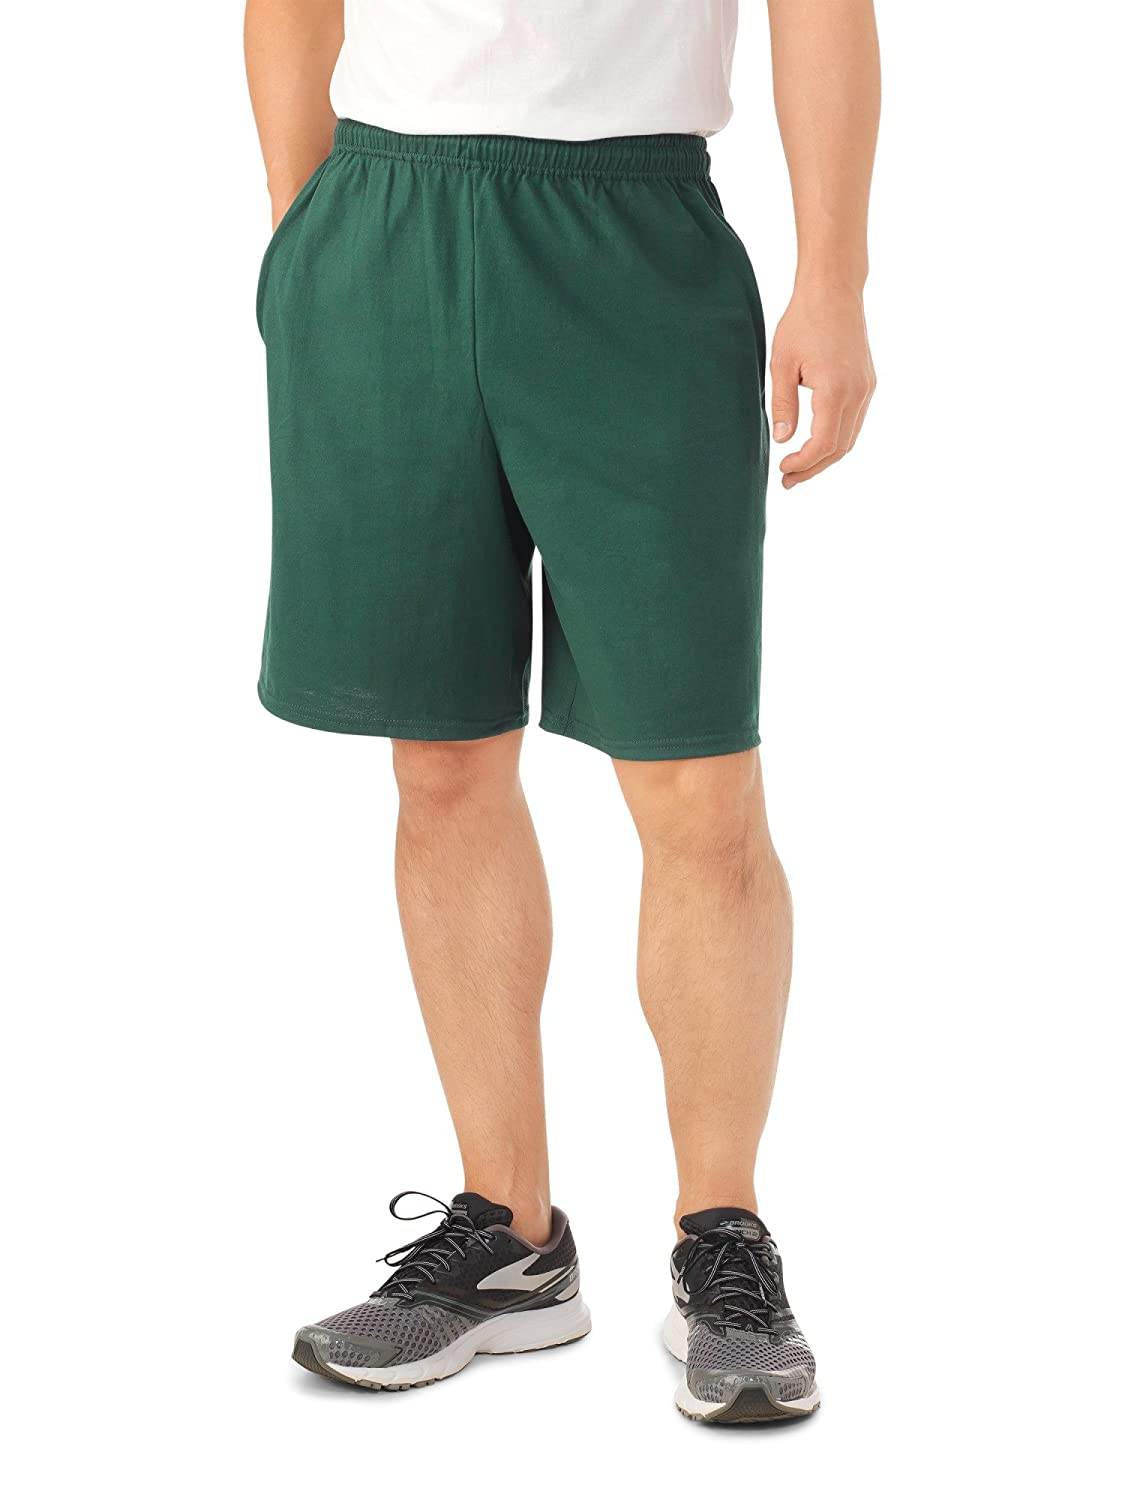 Fruit of the Loom Men's Jersey Short flat-front-shorts